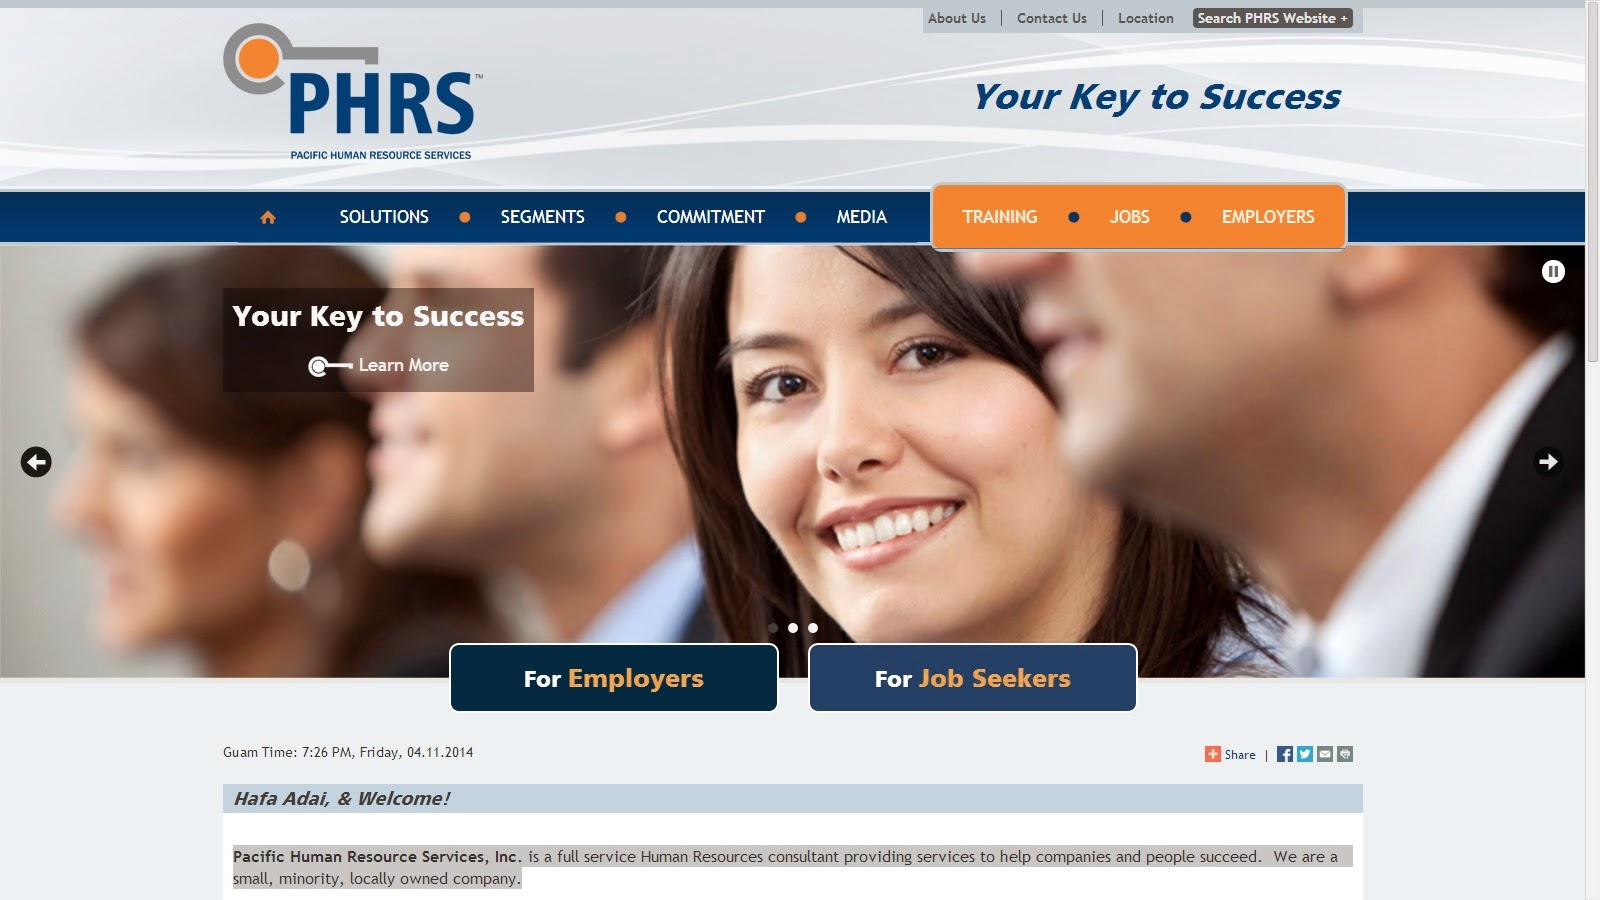 Welcome to PHRS's Official Blog. Looking for our website instead? Click on the image below.